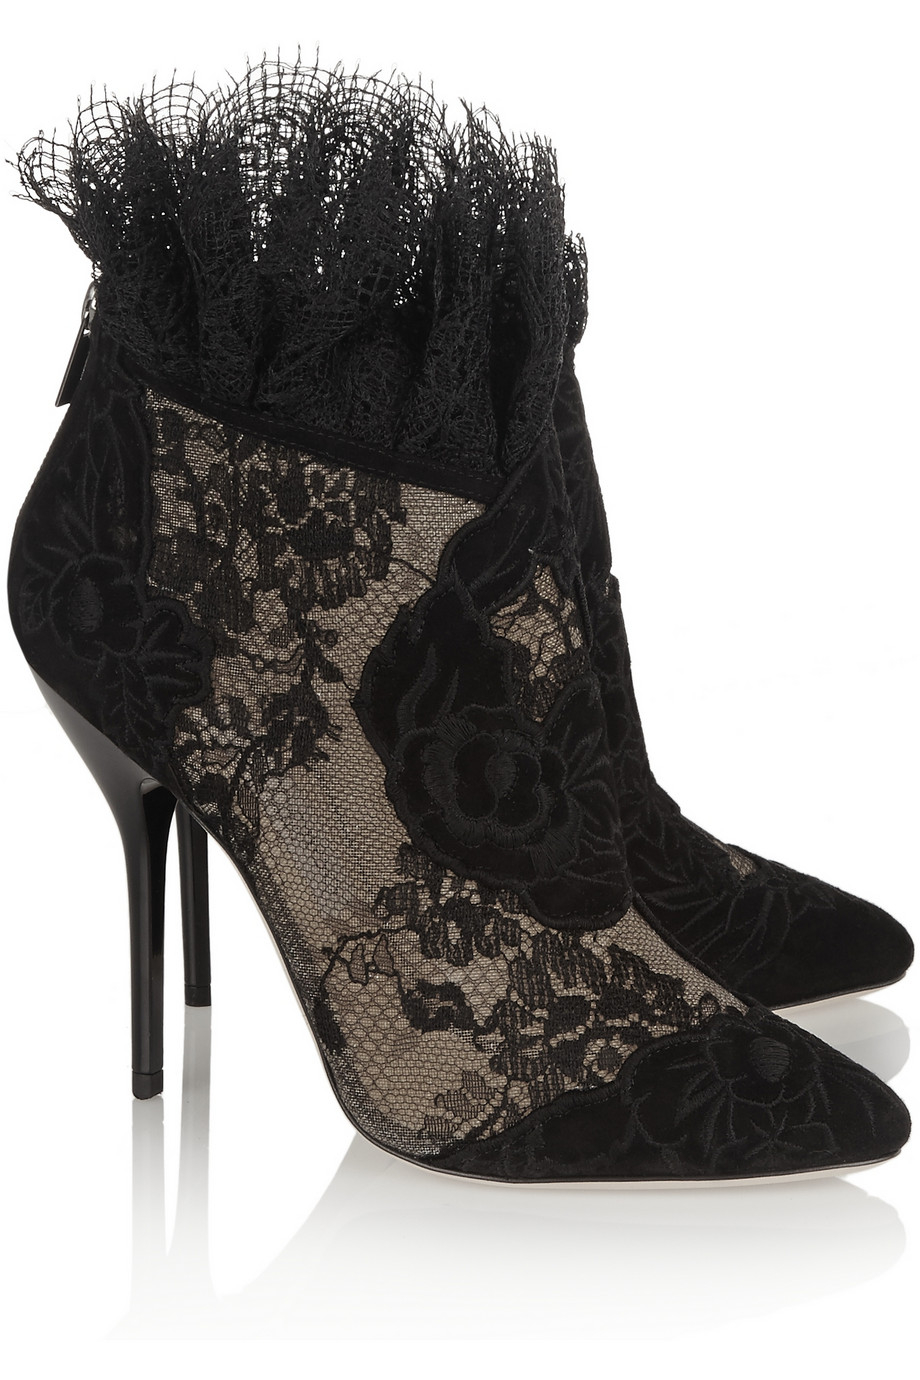 46c2edcba8f8 Lyst - Jimmy Choo Kamaris Suede and Lace Ankle Boots in Black